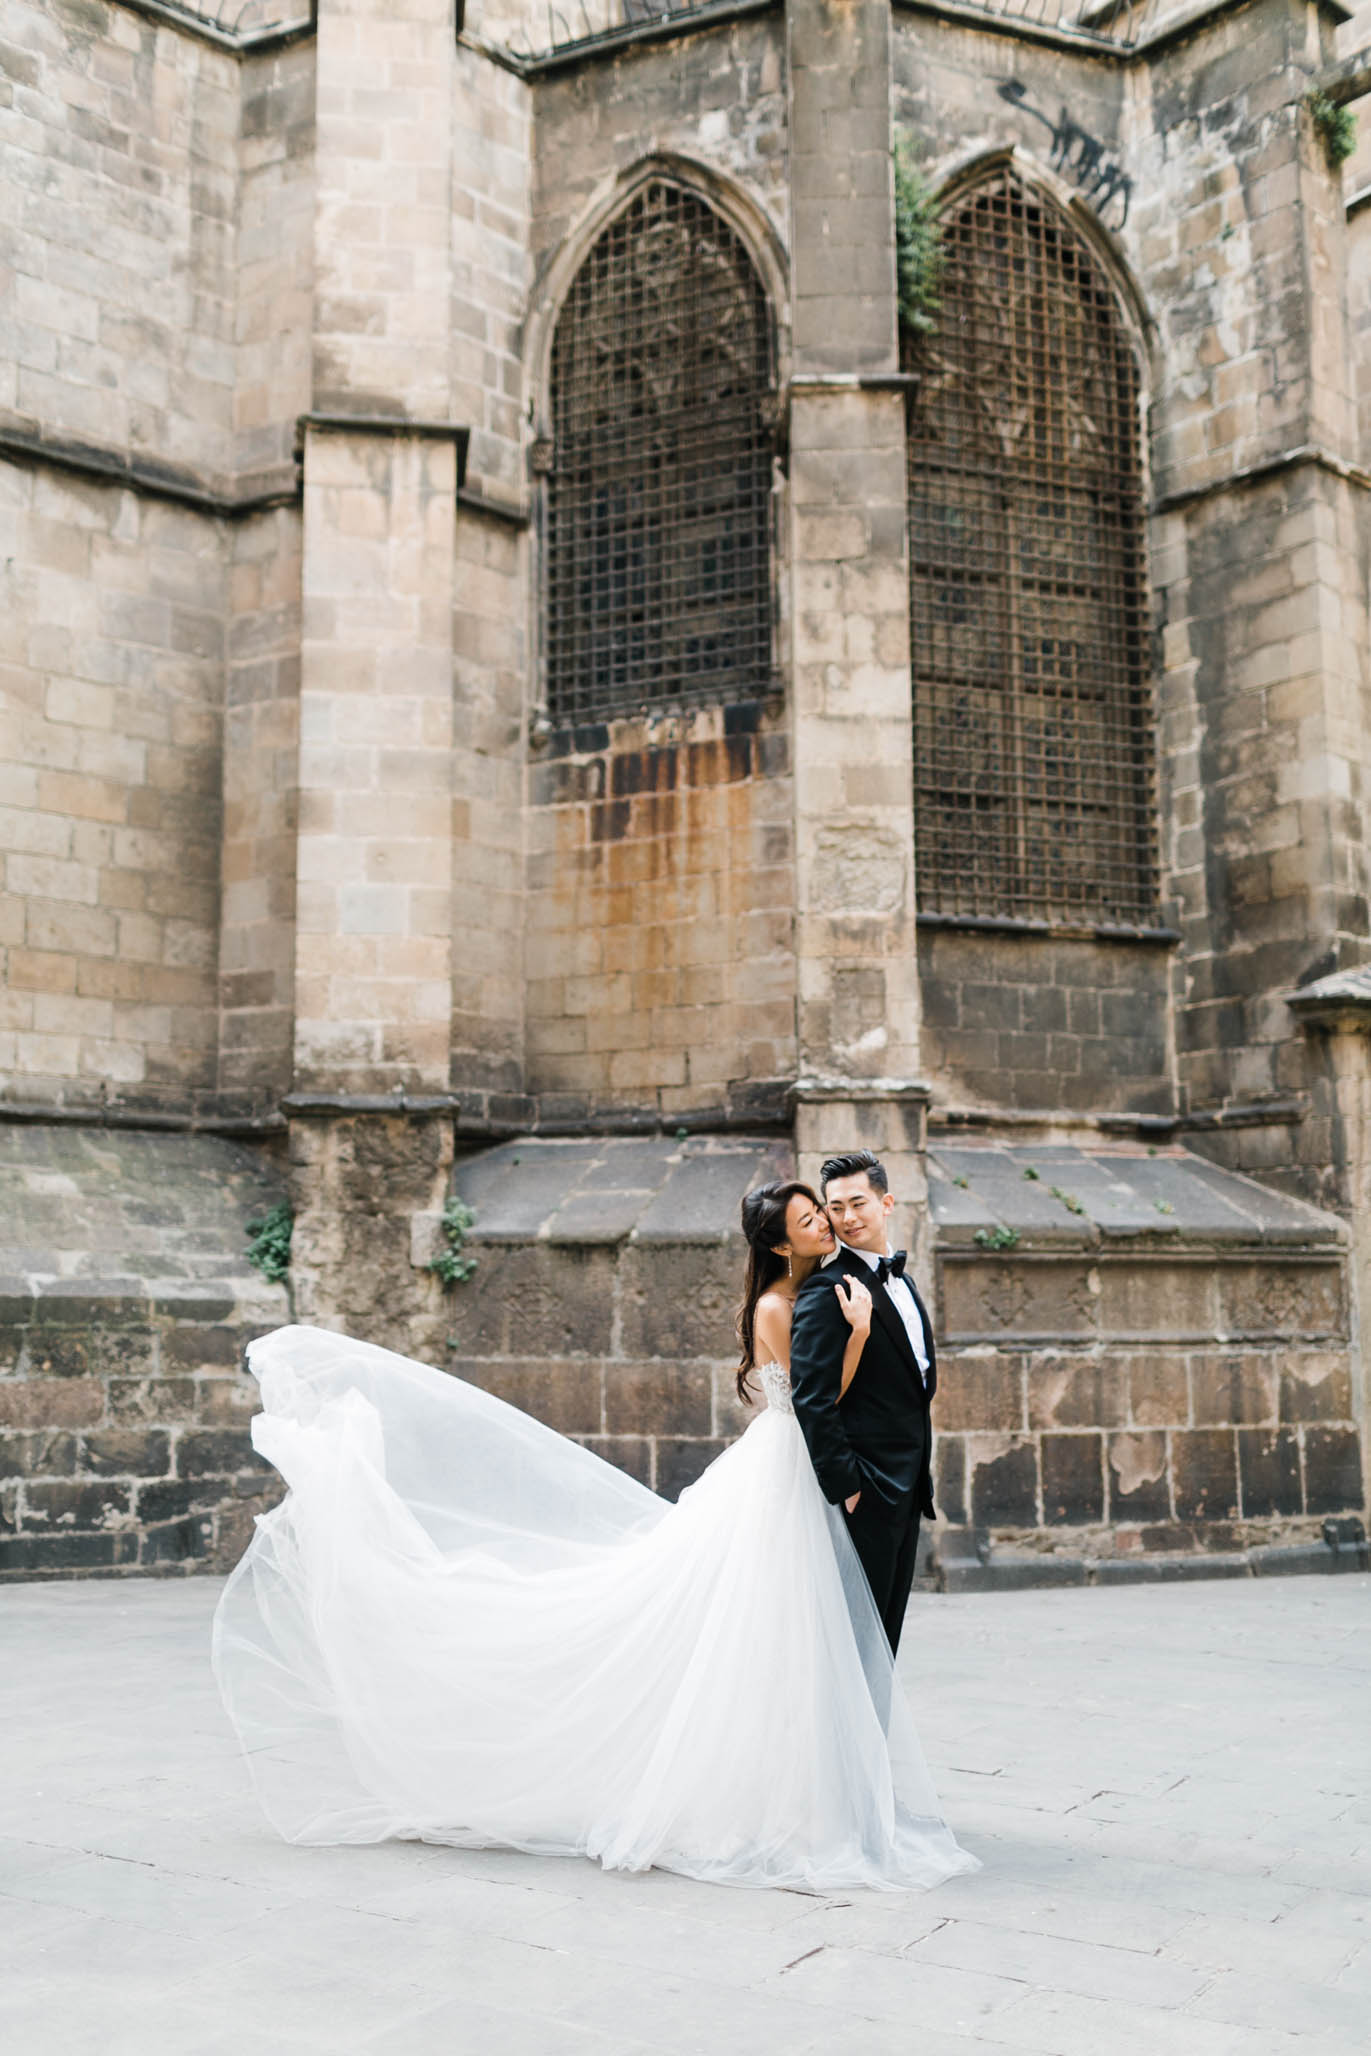 This will forever be imprinted in my dreams. Such a gorgeous shot in front of the Gothic Cathedral in Barcelona.